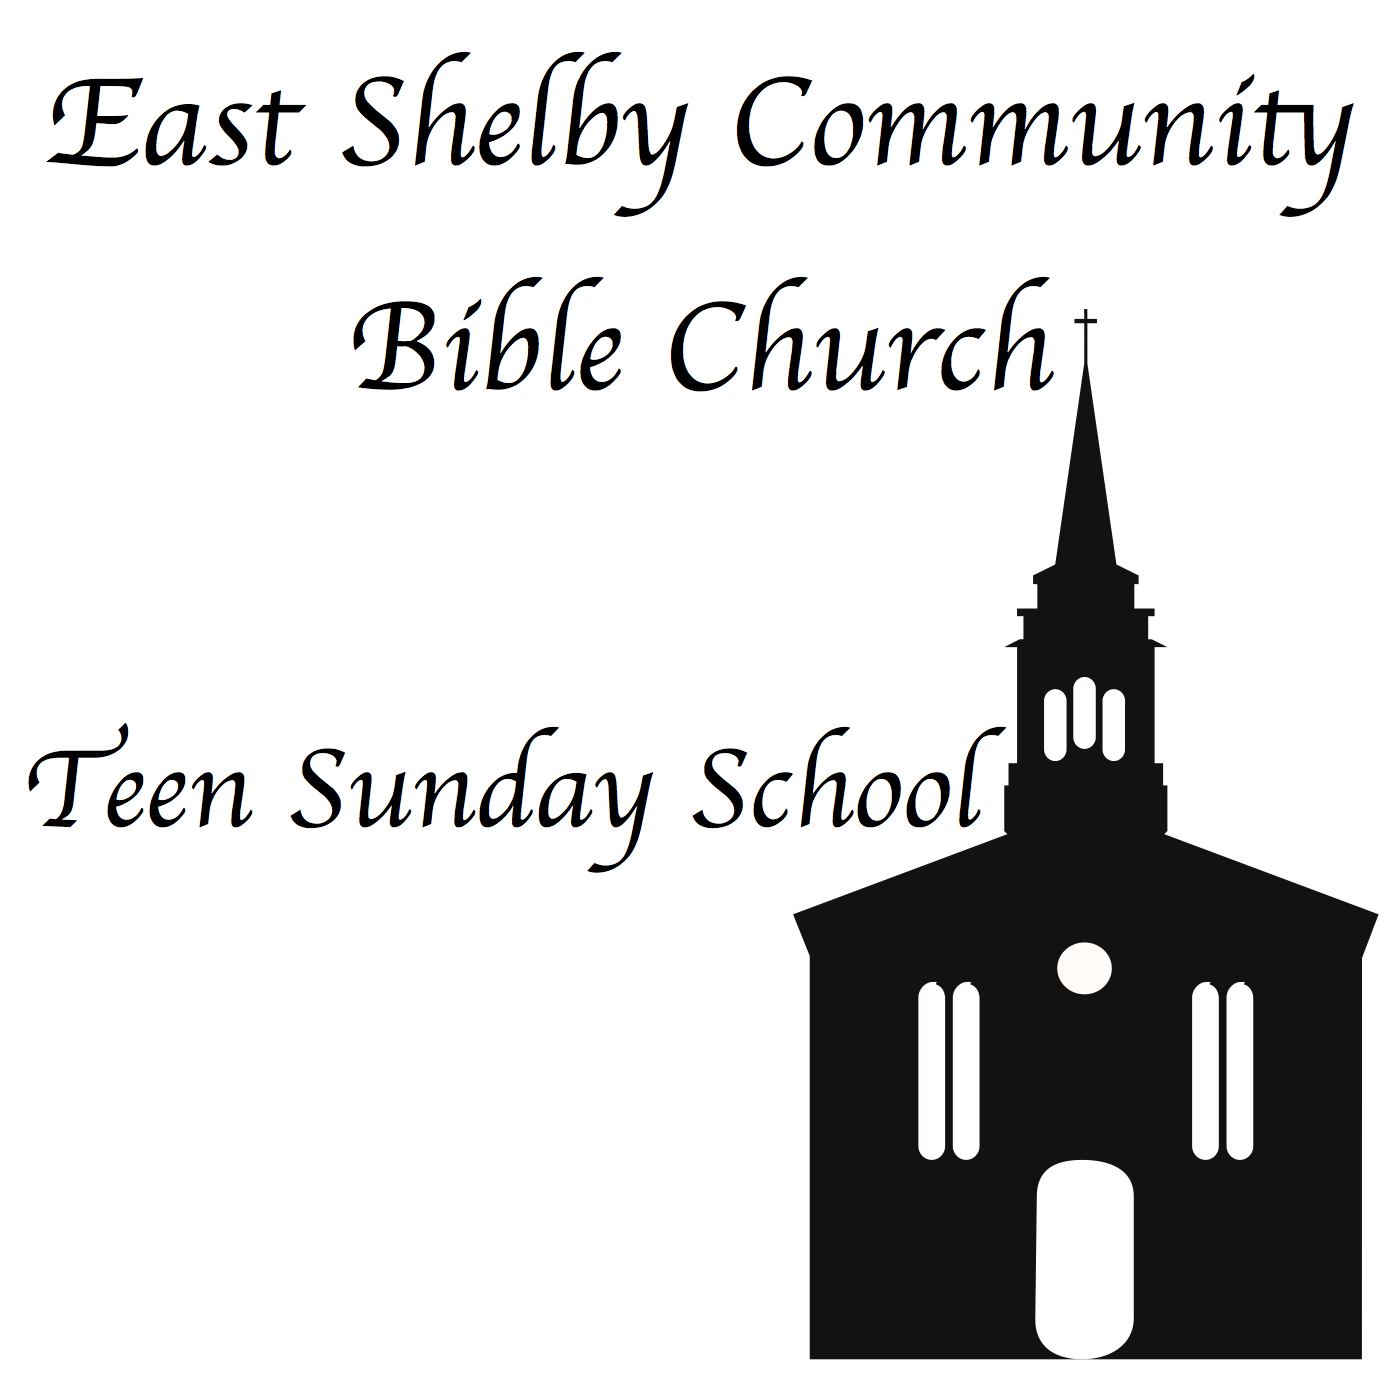 Teen Sunday School - East Shelby Community Bible Church